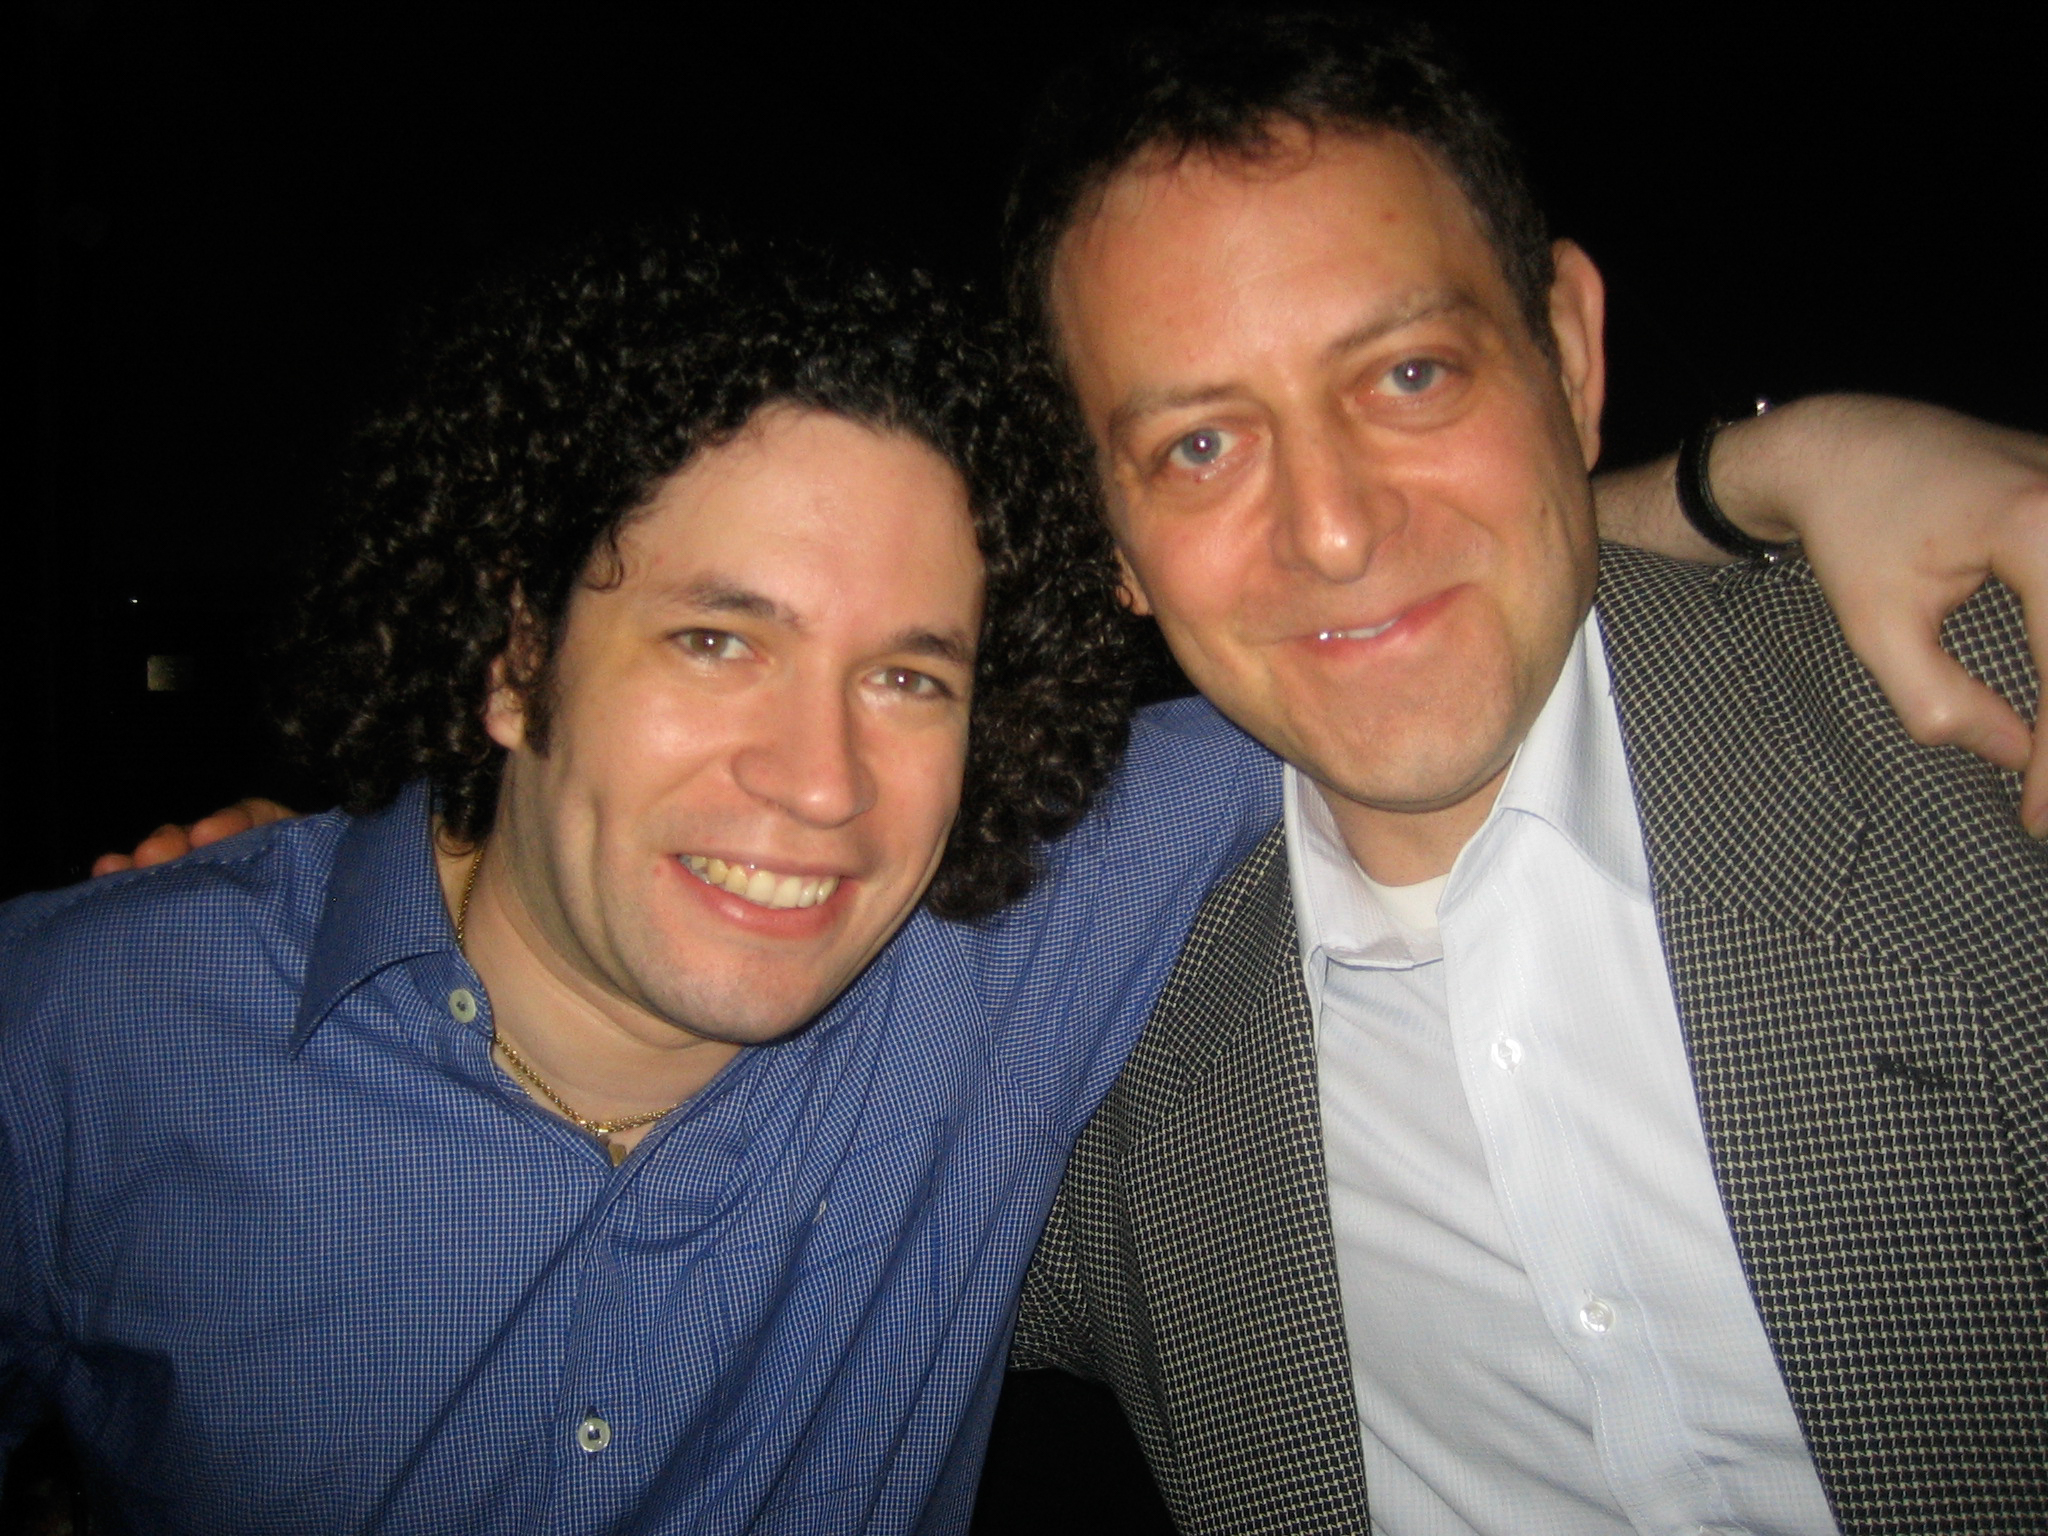 With conductor Gustavo Dudamel in Caracas, Venezuela